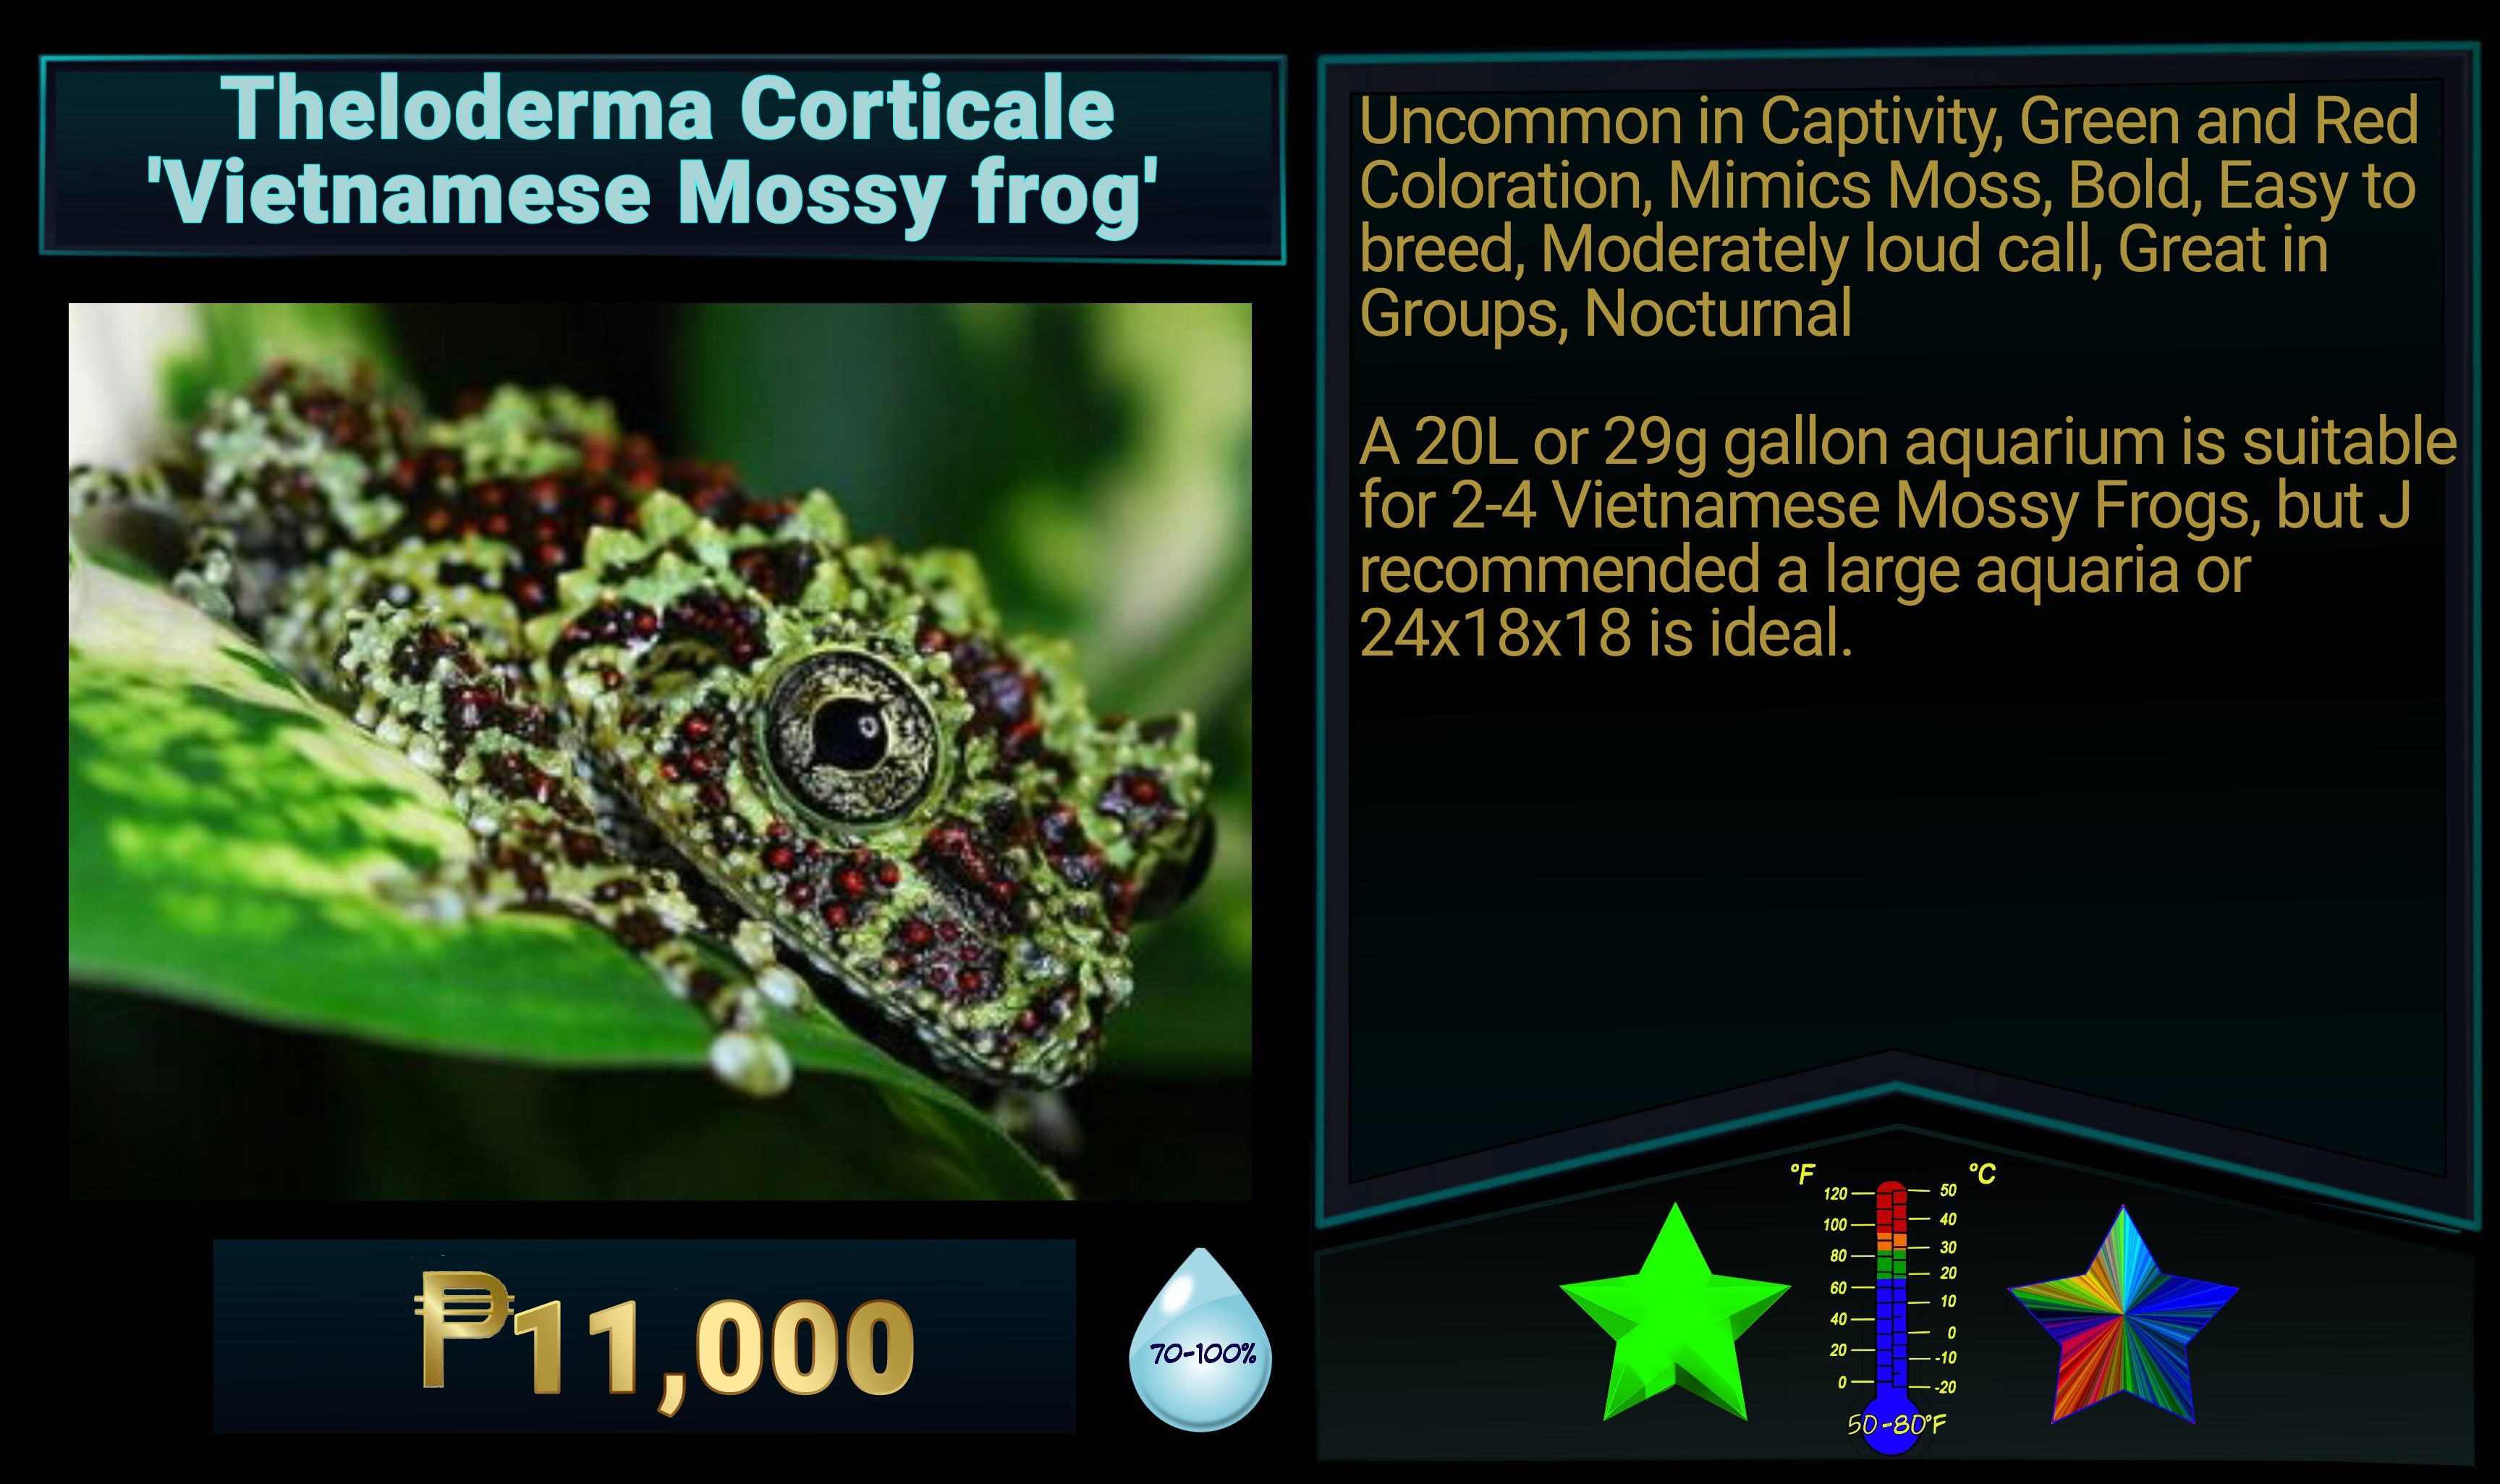 Theloderma corticale Vietnamese Mossy Frog